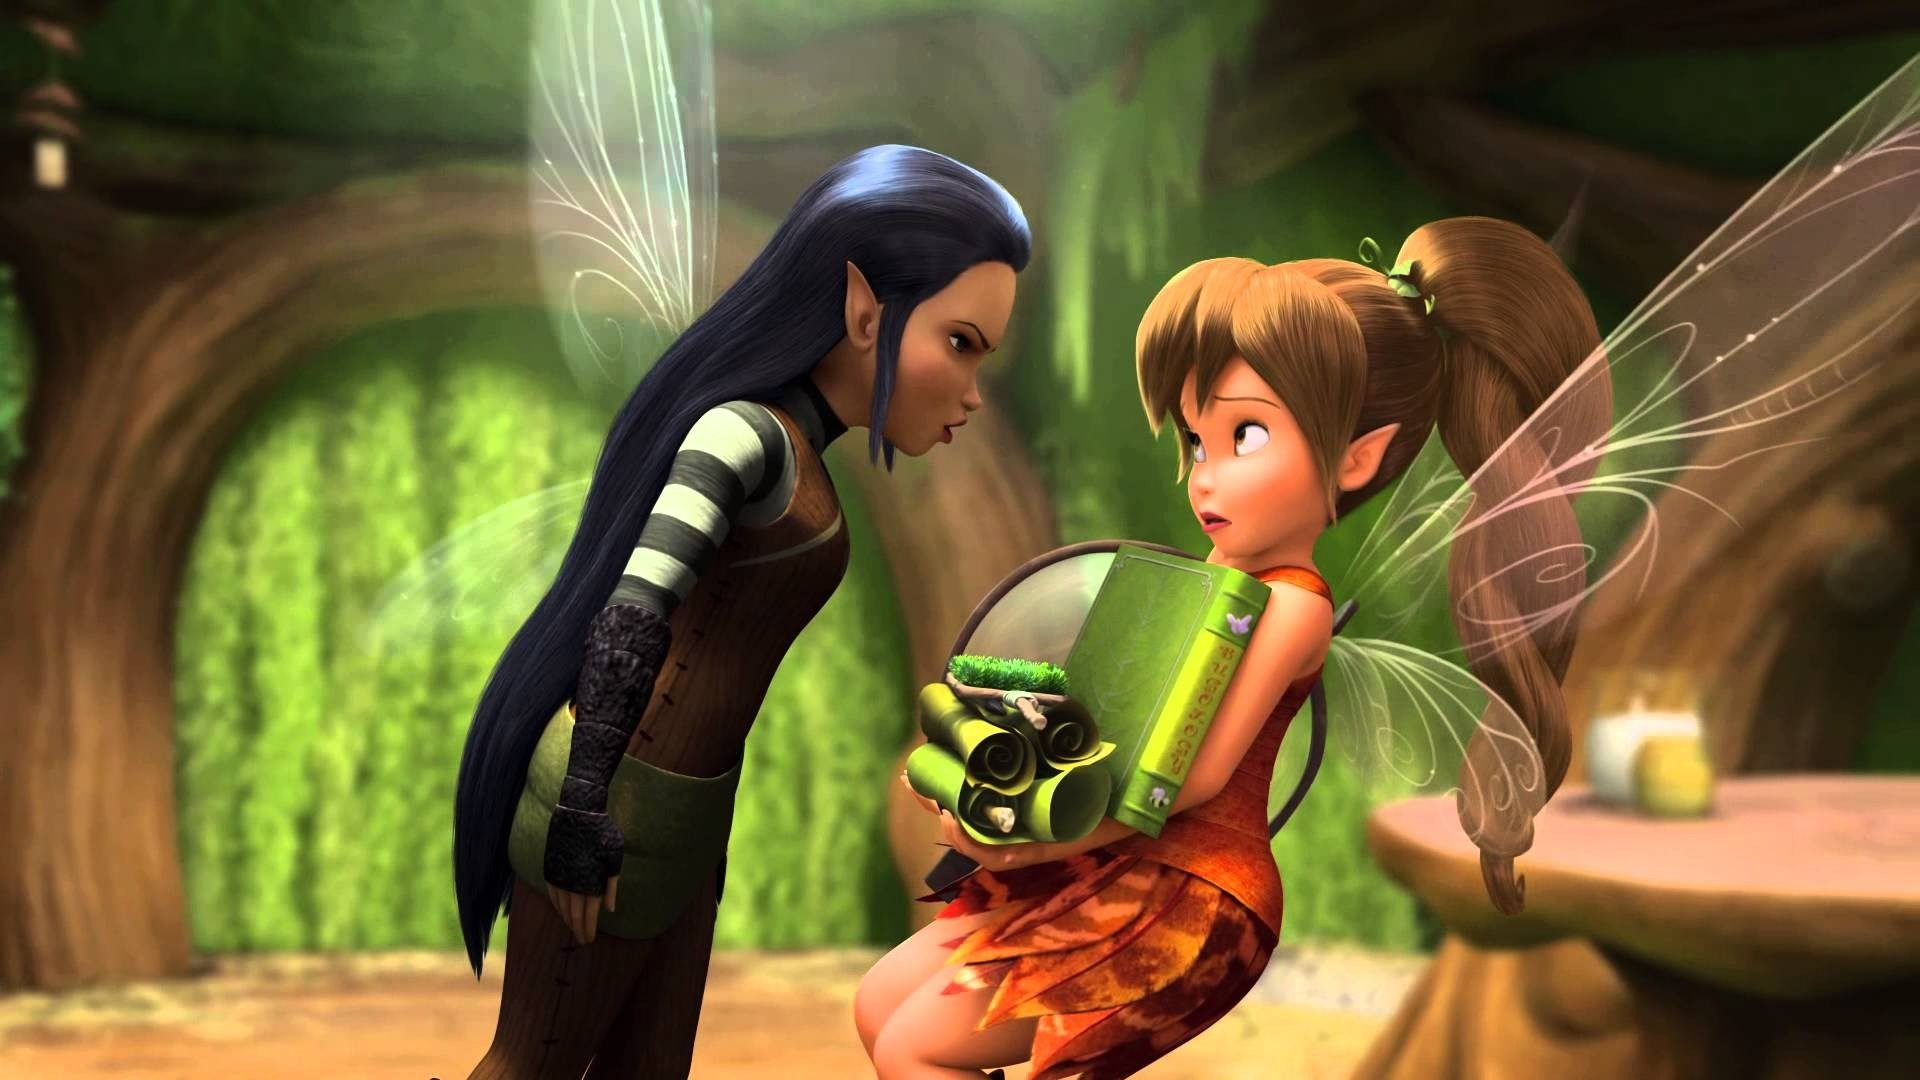 Res: 1920x1080, free desktop wallpaper downloads tinker bell and the legend of the  neverbeast